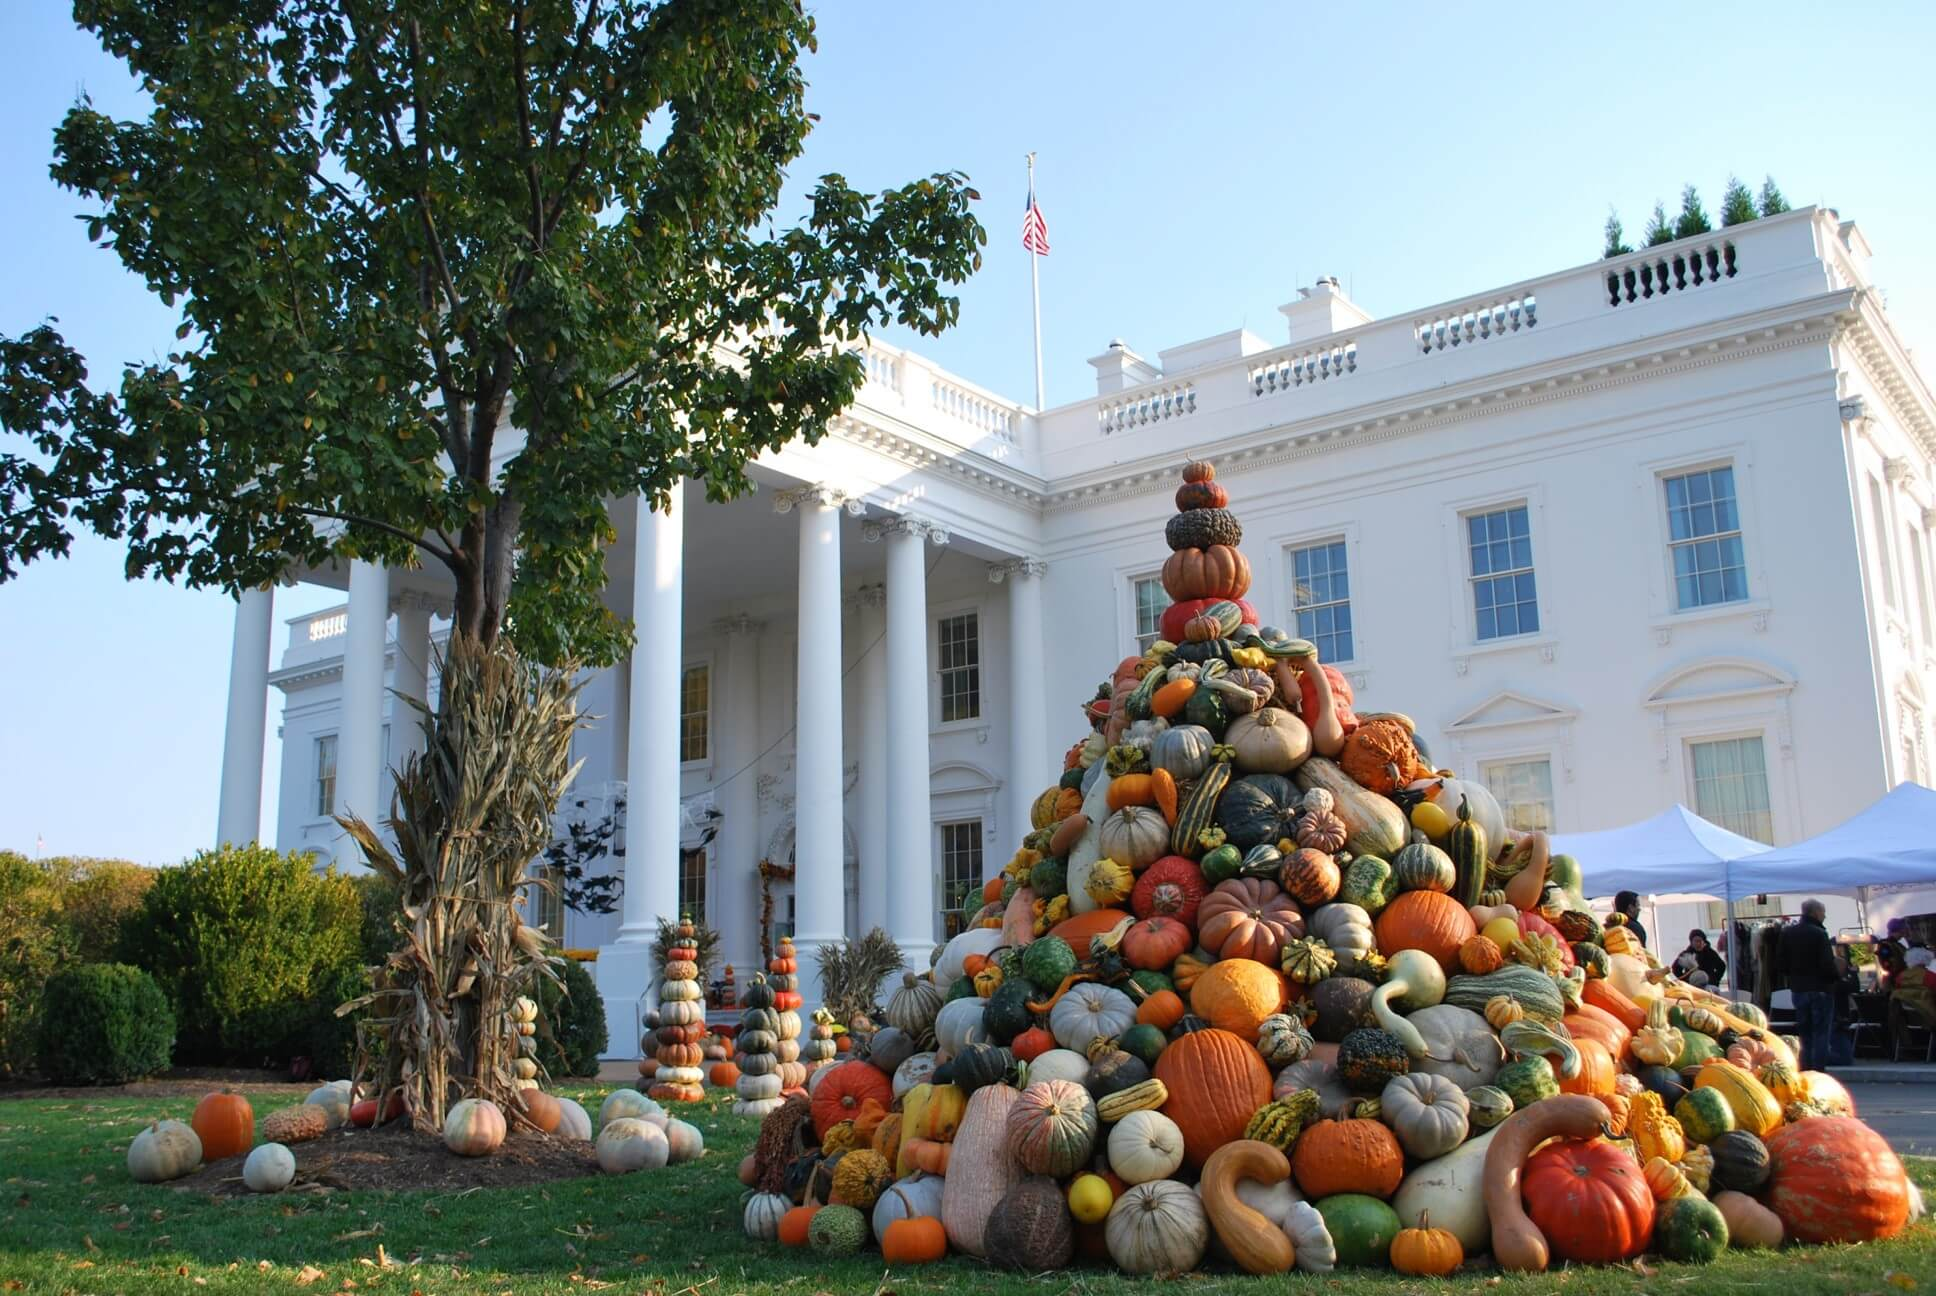 The Great Pumpkin Patch - Arthur, Illinois - Branding - The White House